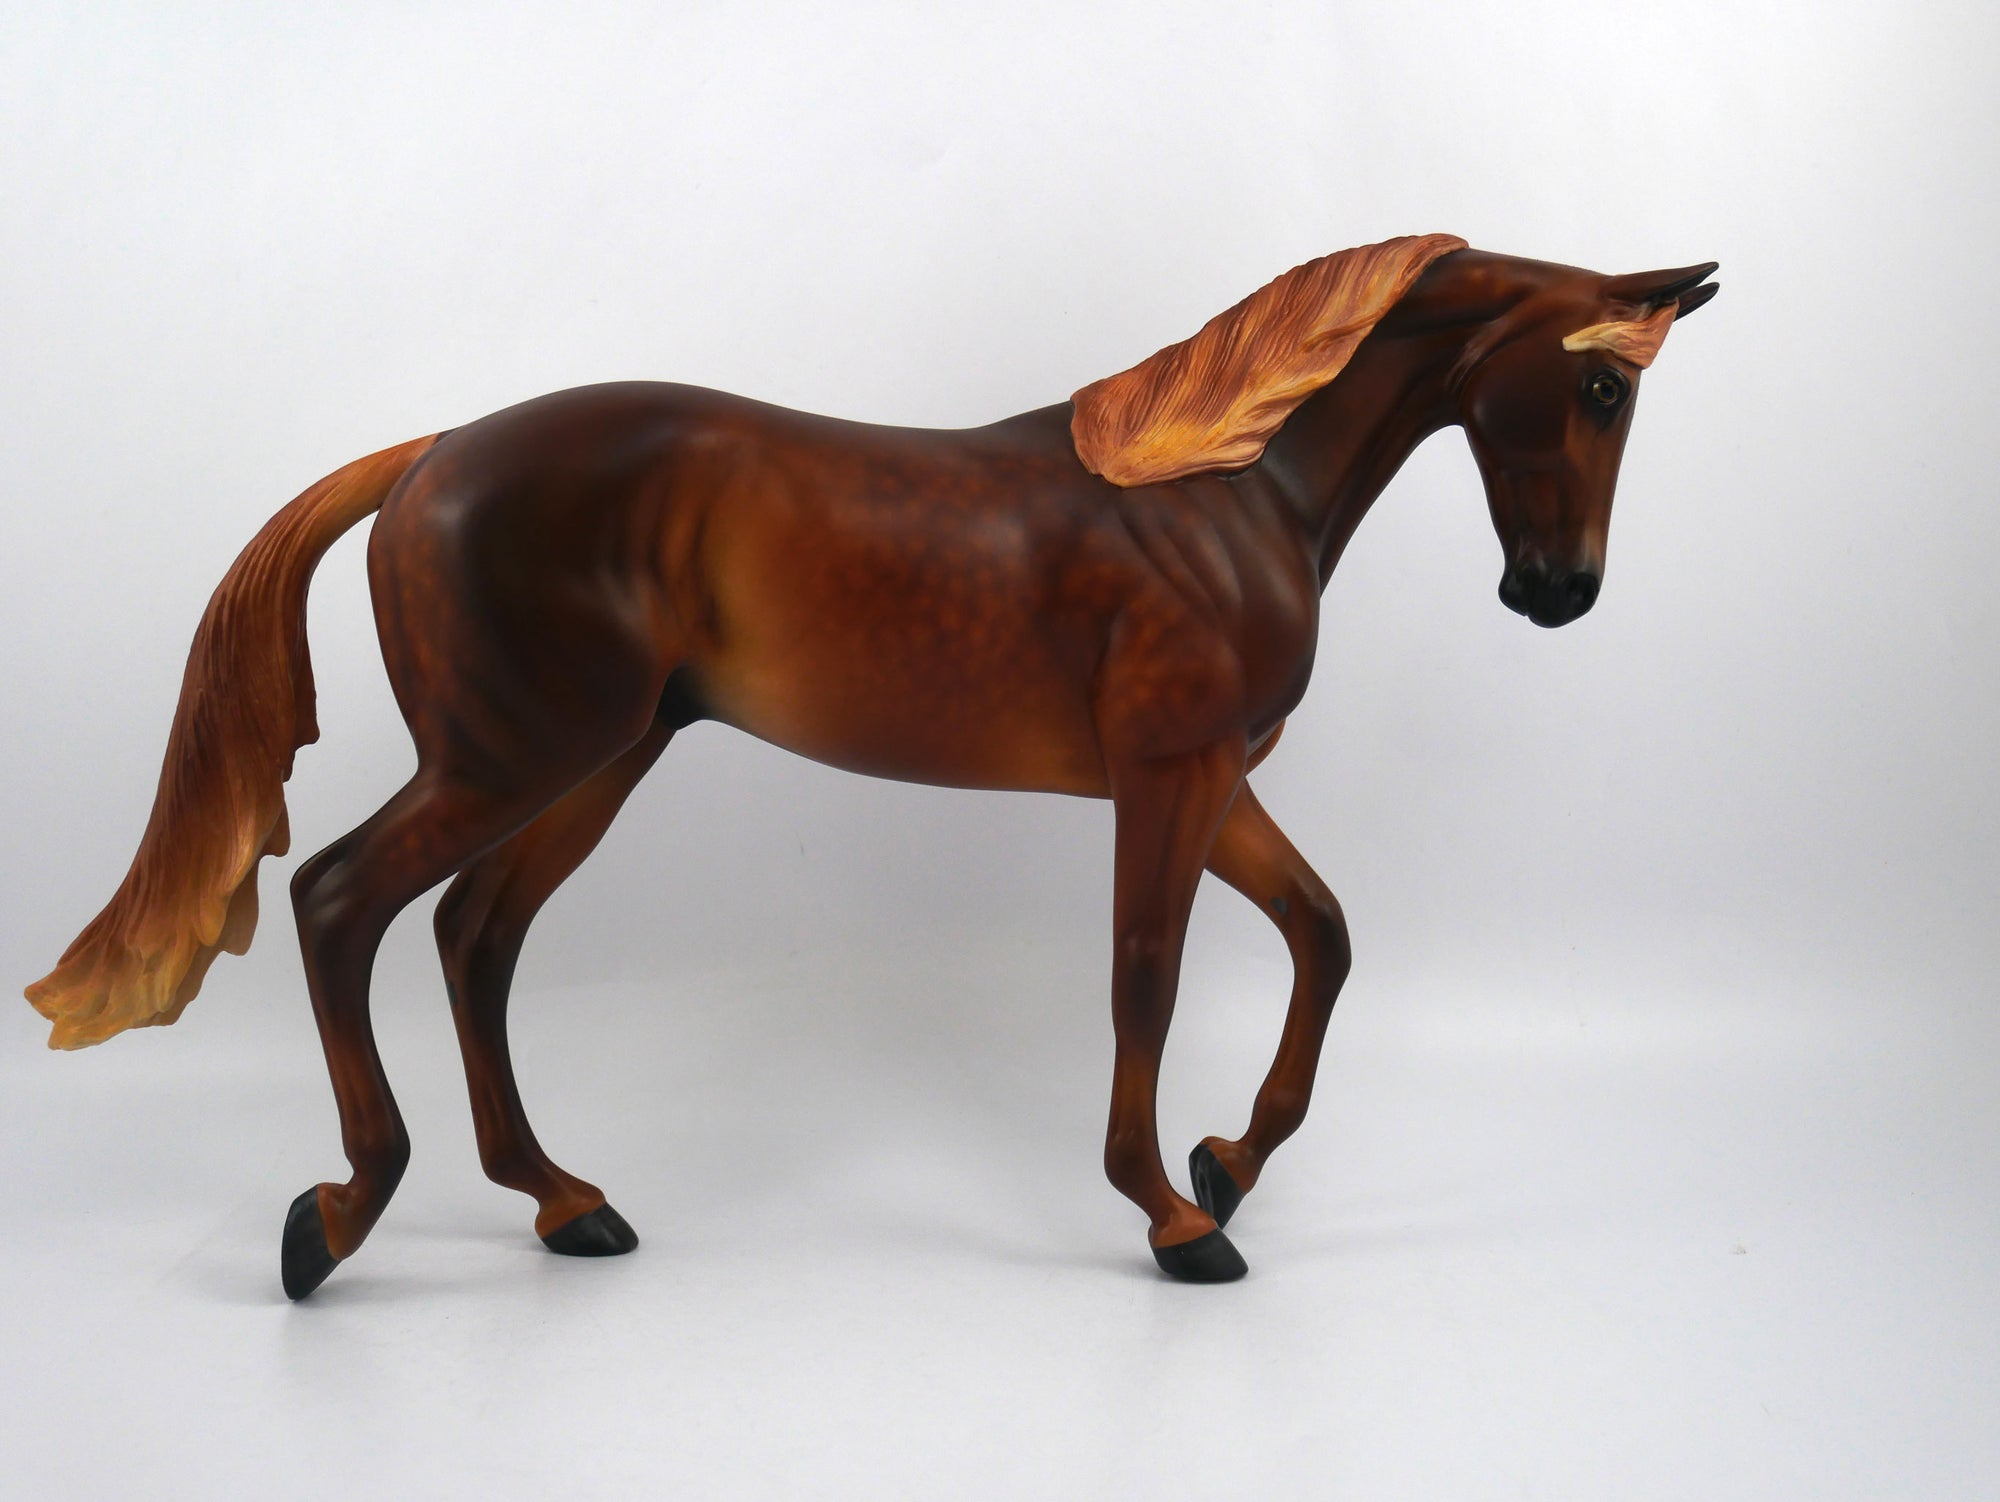 Ralph the Mouth-OOAK Dapple Chestnut Thoroughbred Painted by Sheryl Leisure 1/20